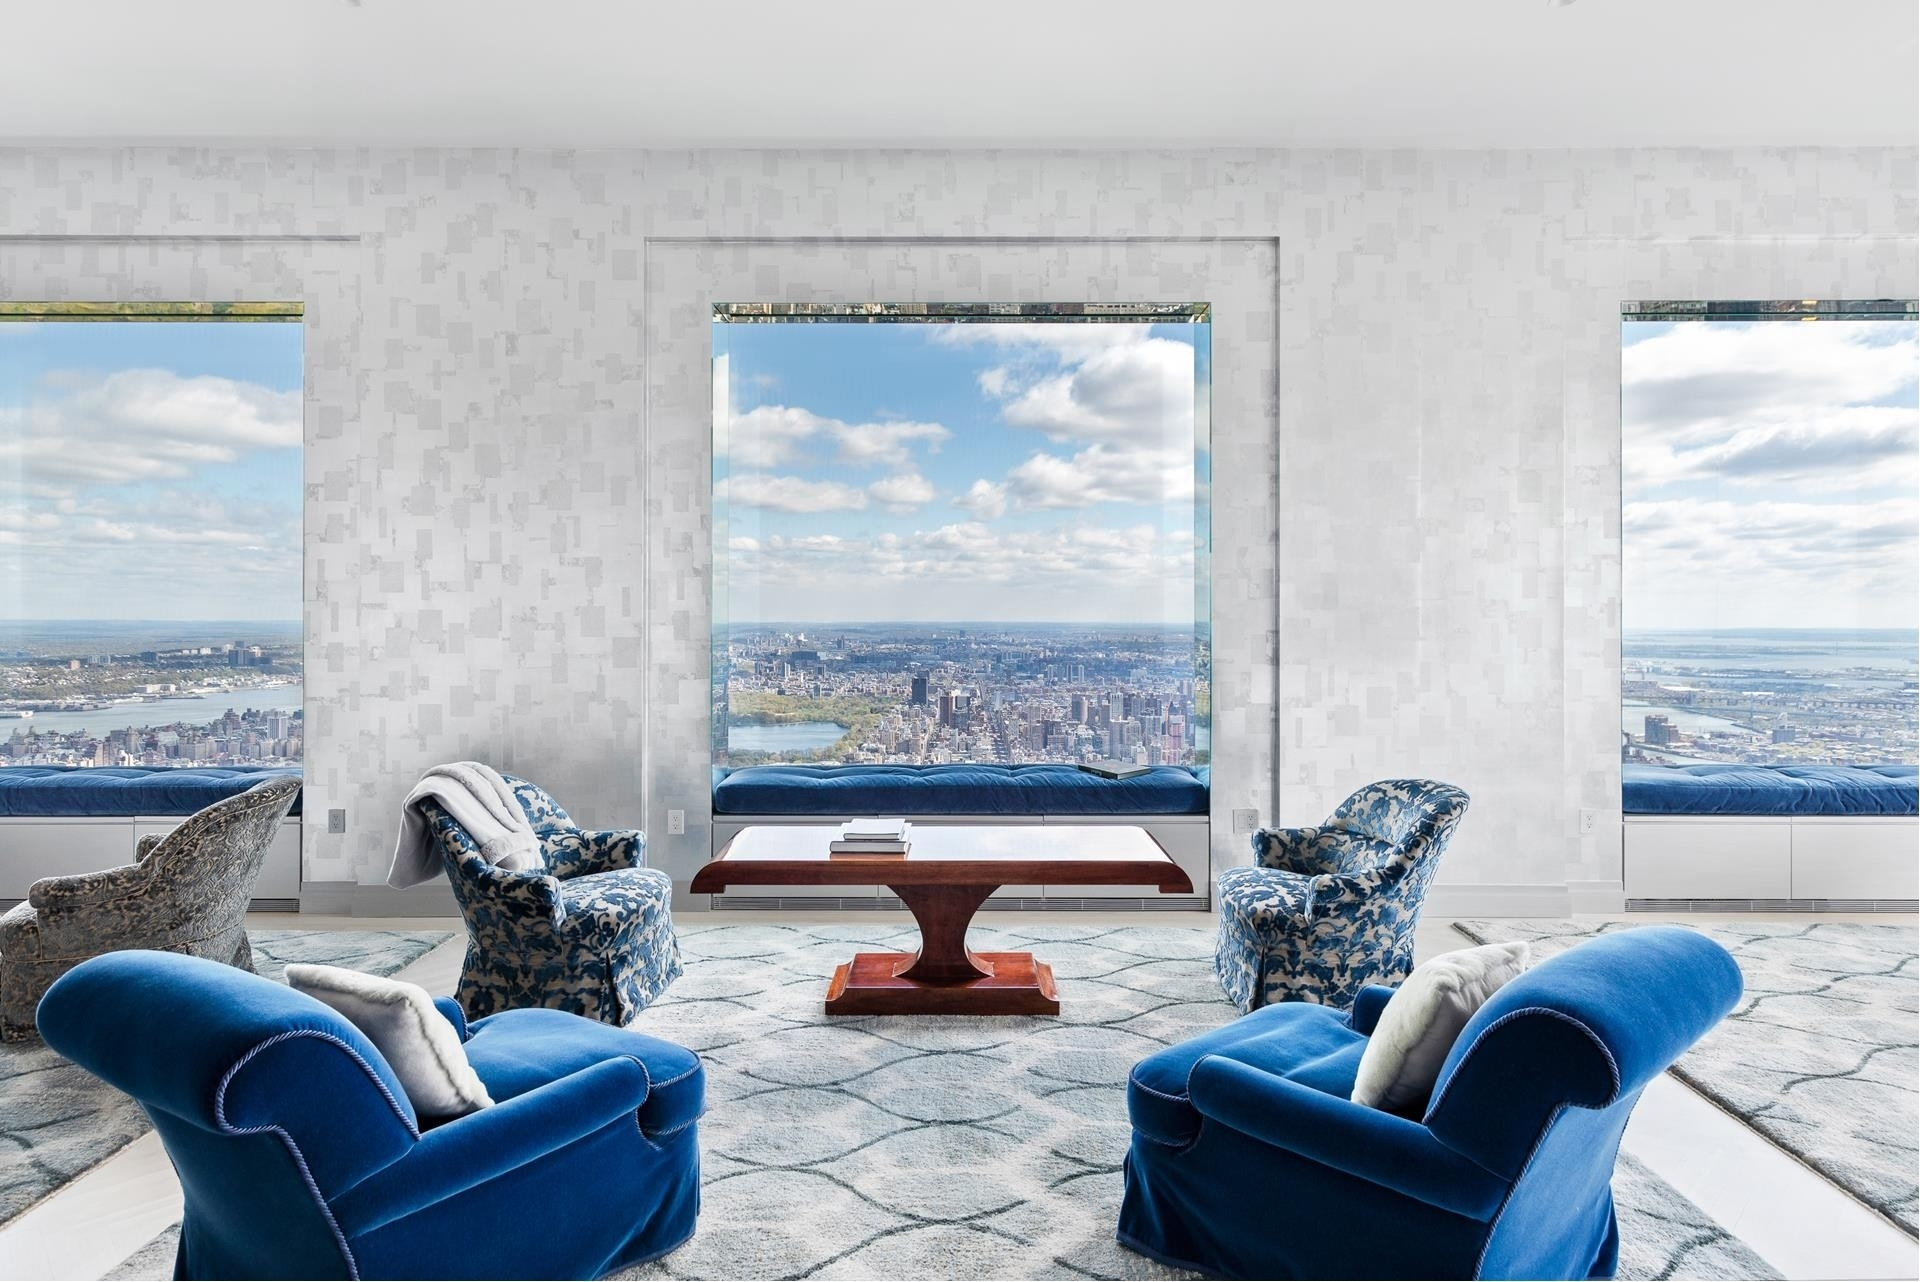 Property at 432 PARK AVE , 84A Midtown East, New York, NY 10022